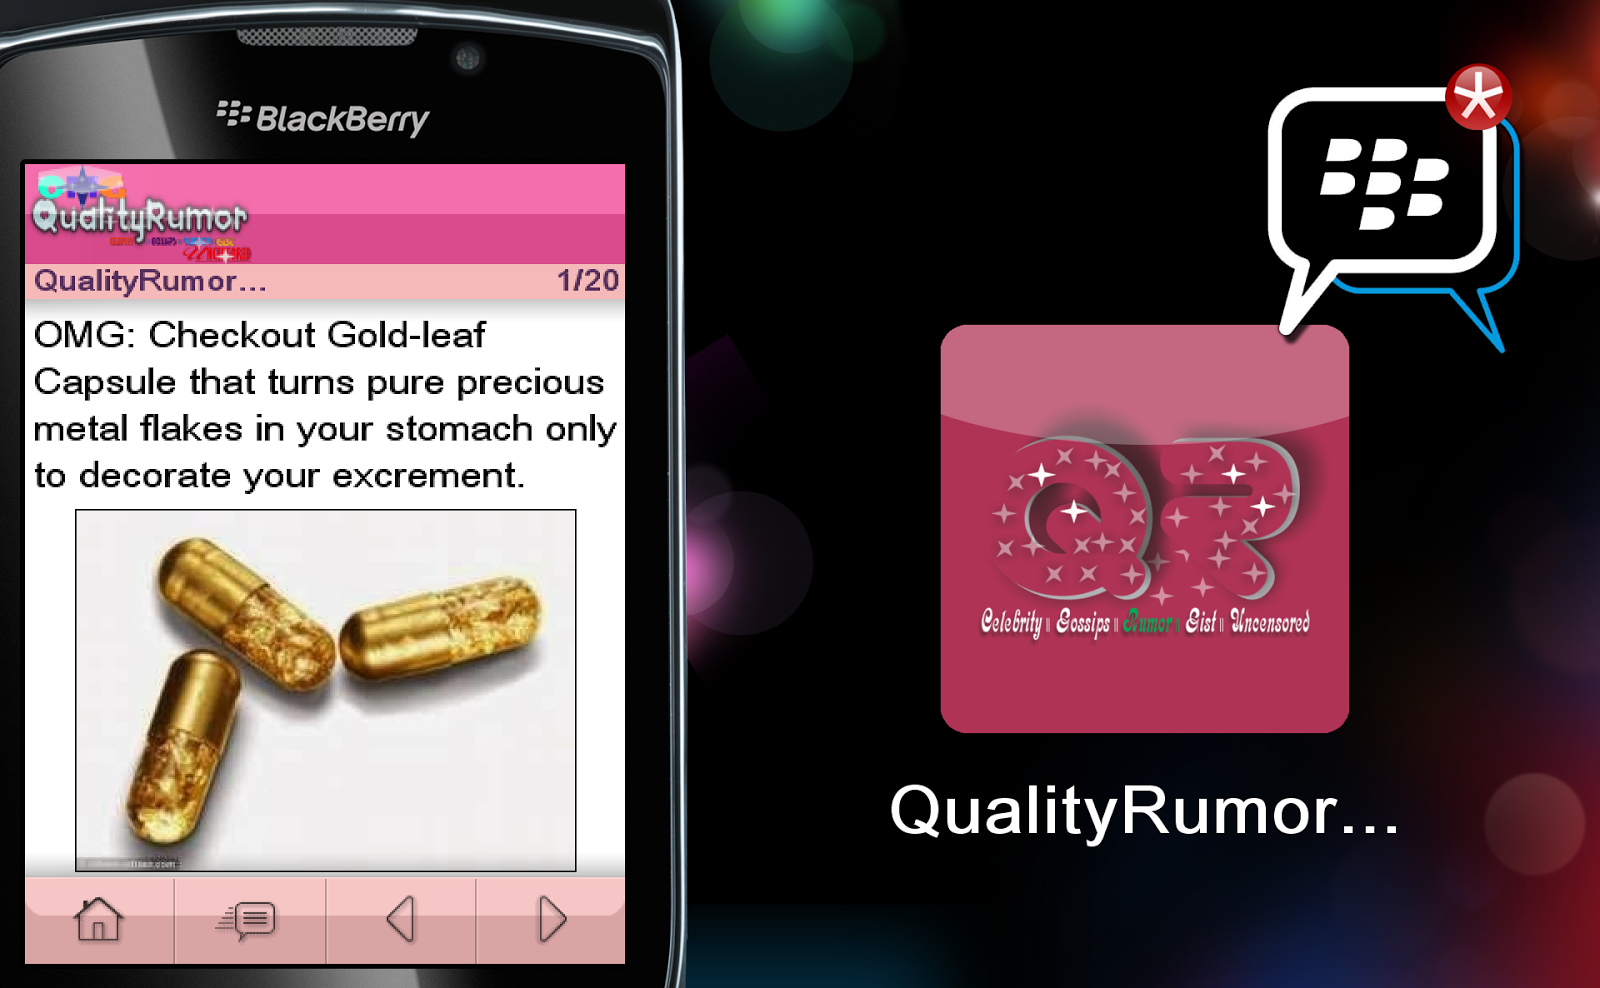 QualityRumor BB AppWorld